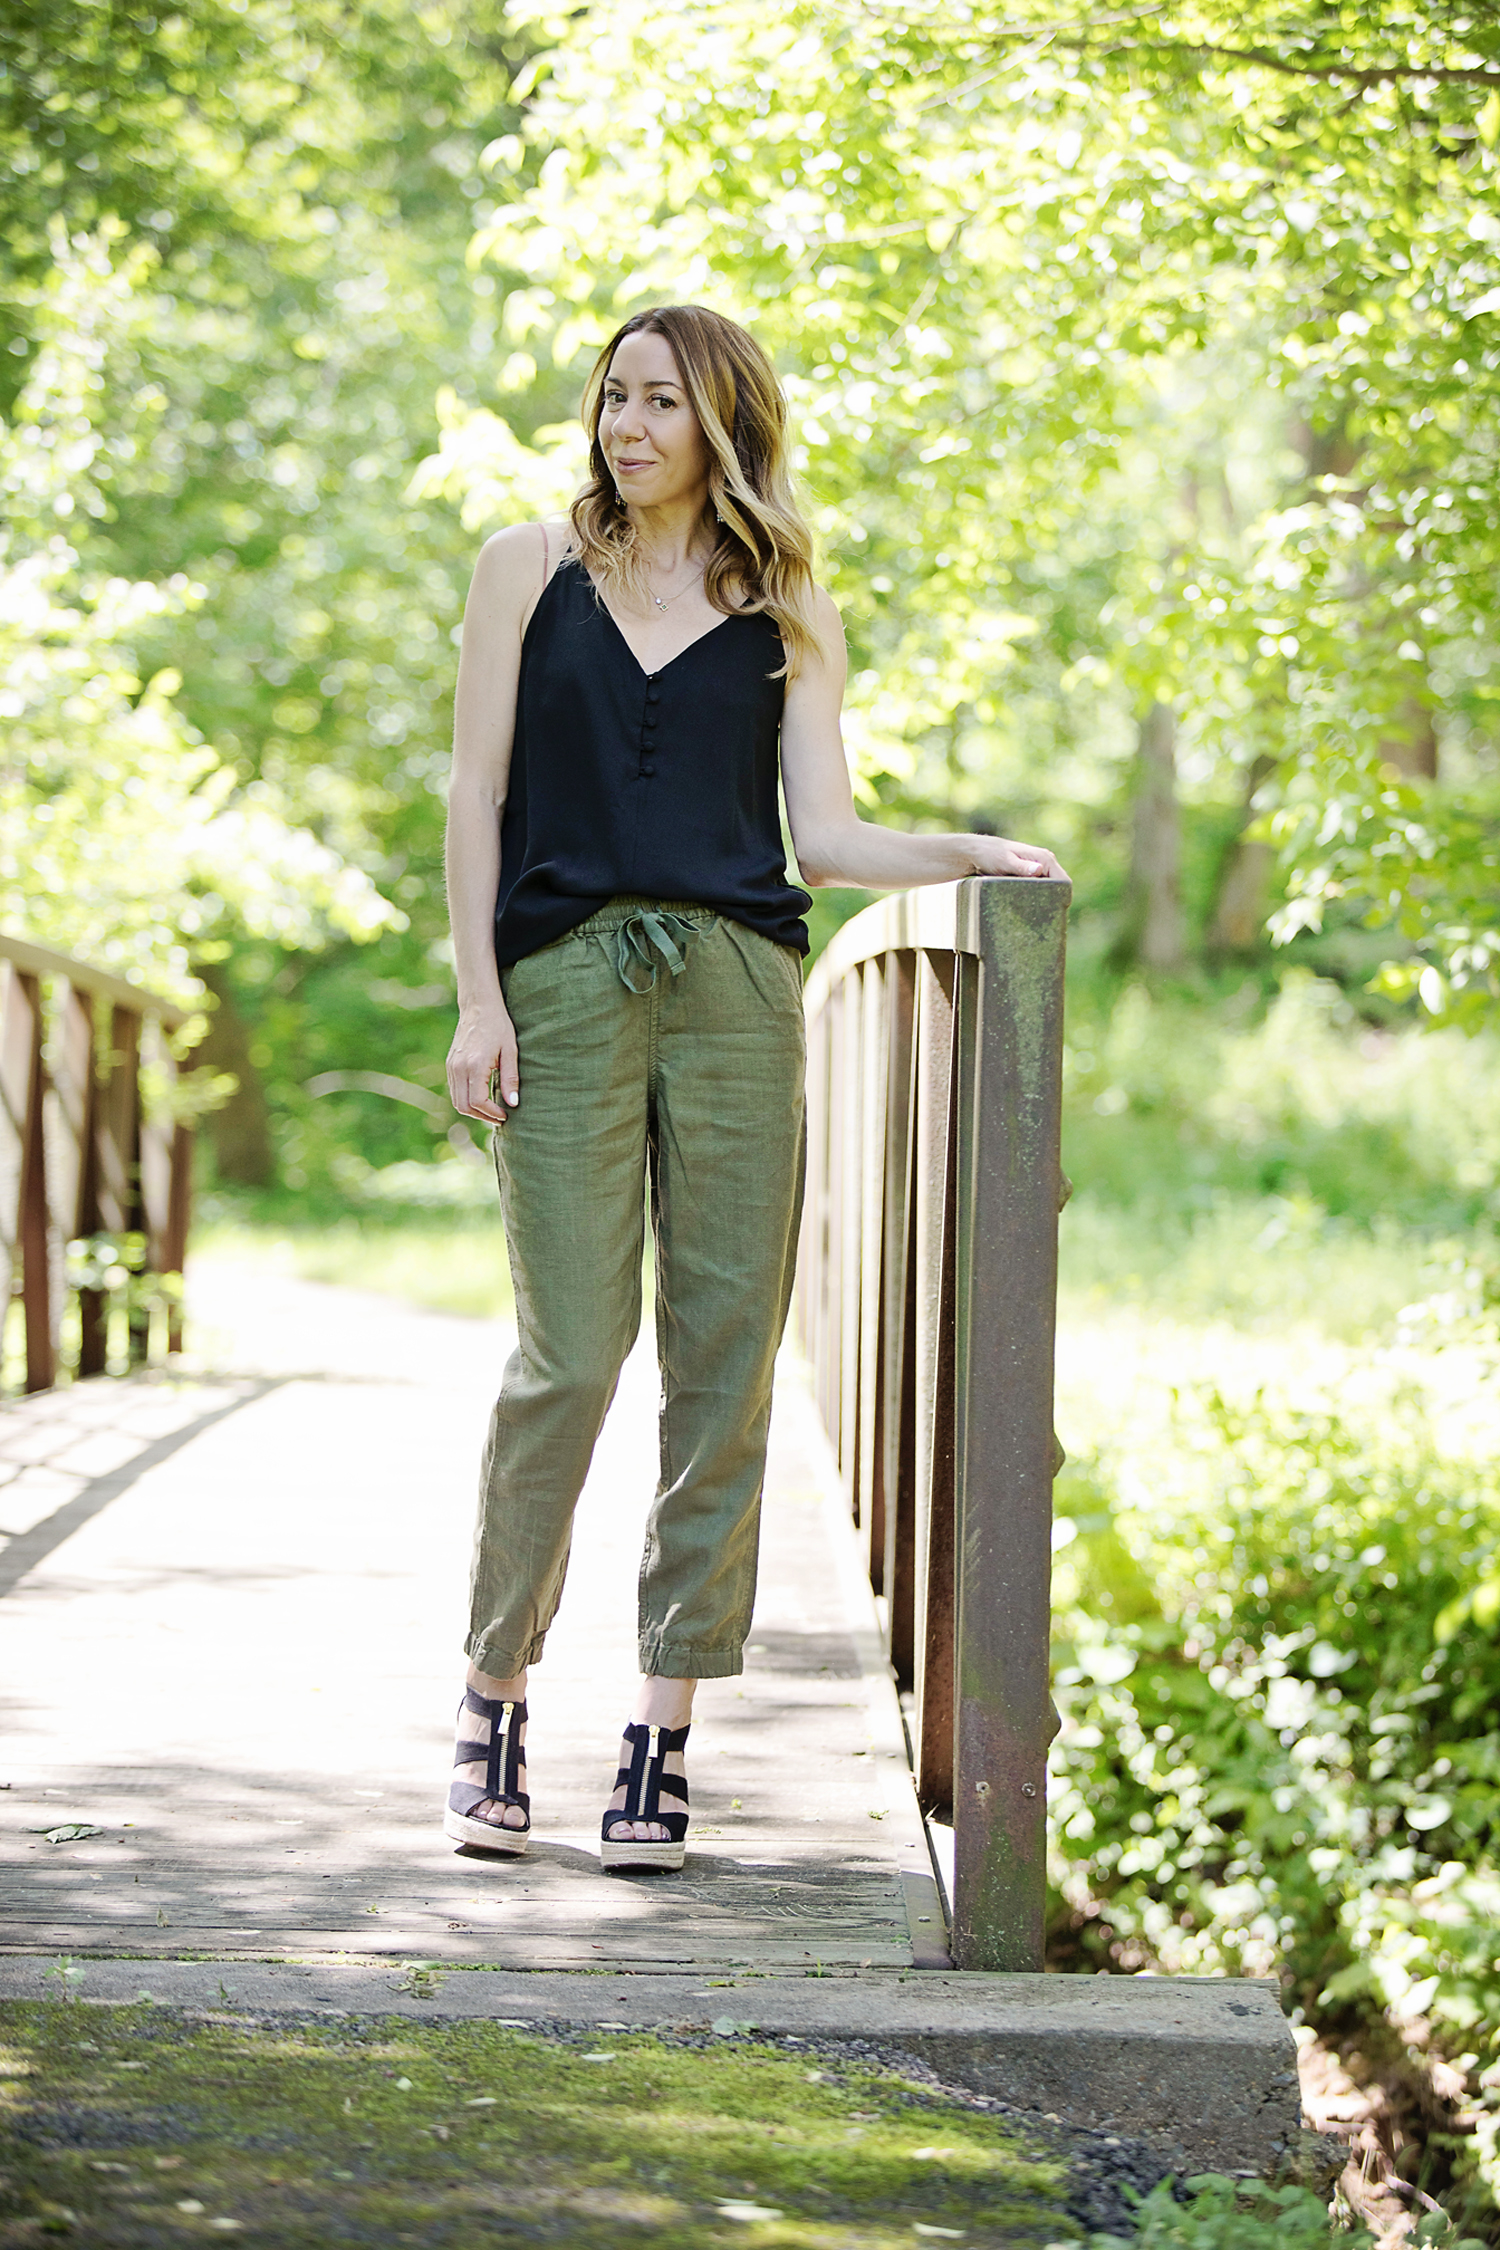 The Motherchic wearing J.Crew seaside pant